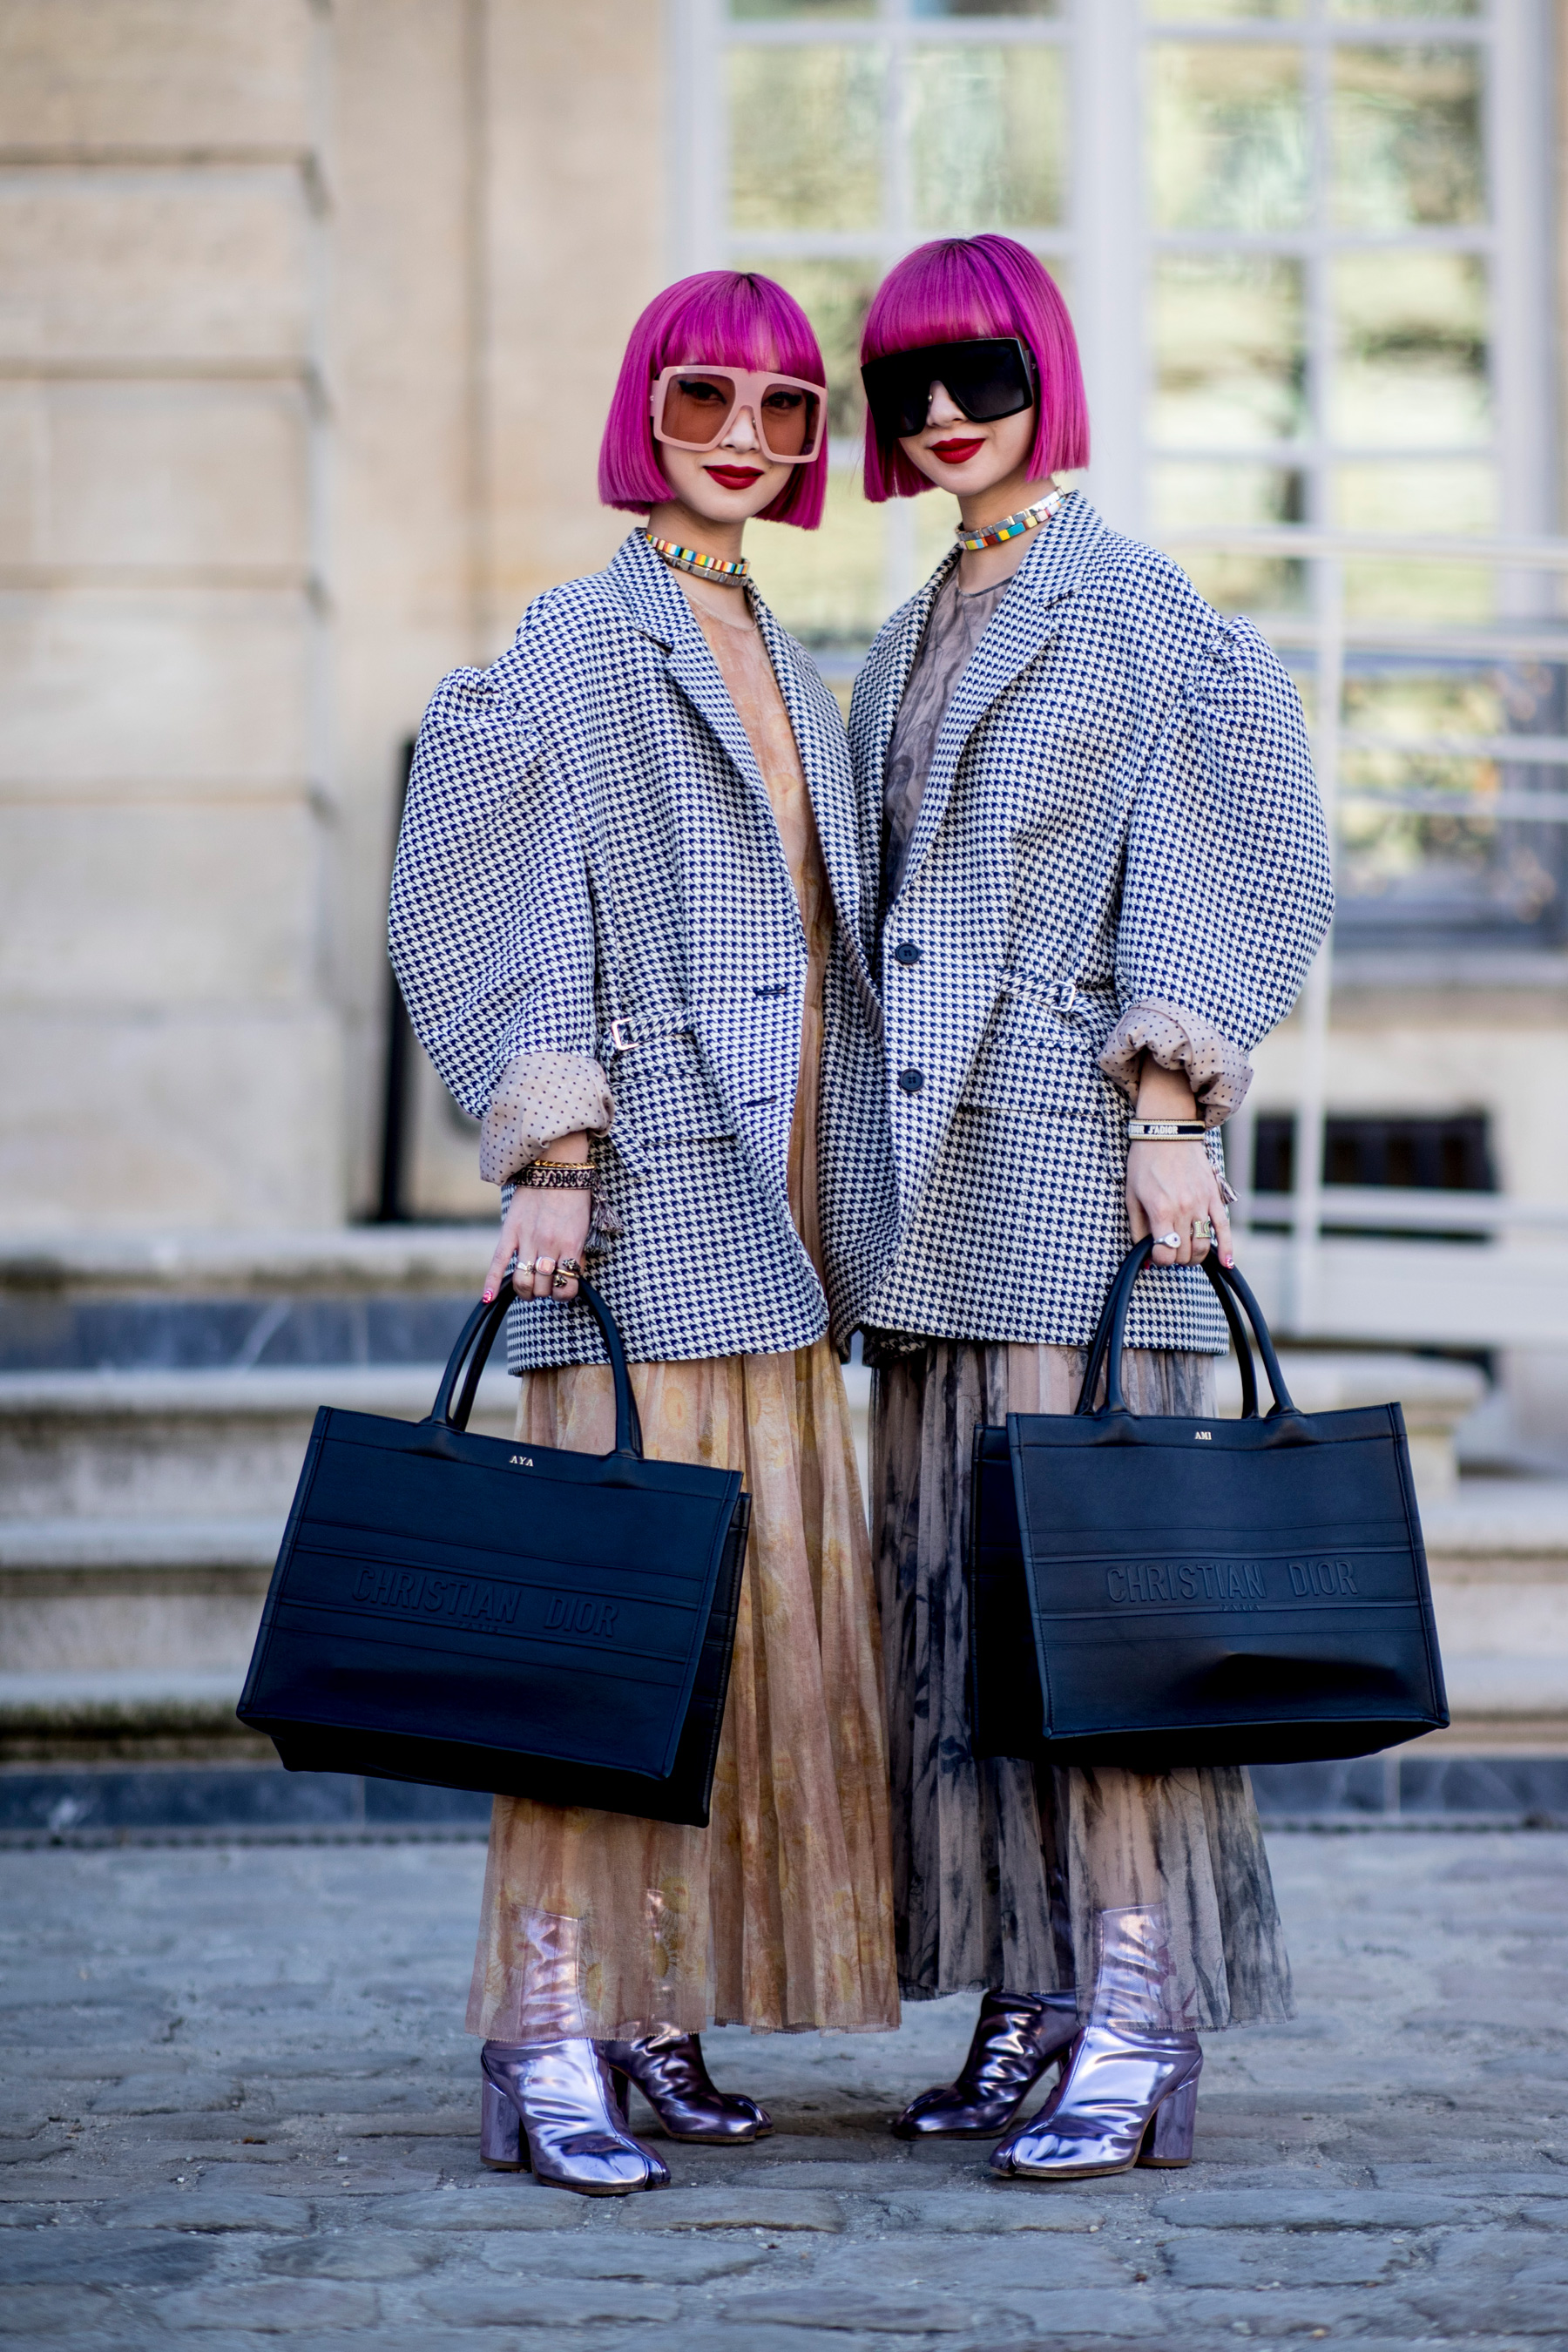 Paris Fashion Week Street Style Fall 2019 Day 1 Accessories